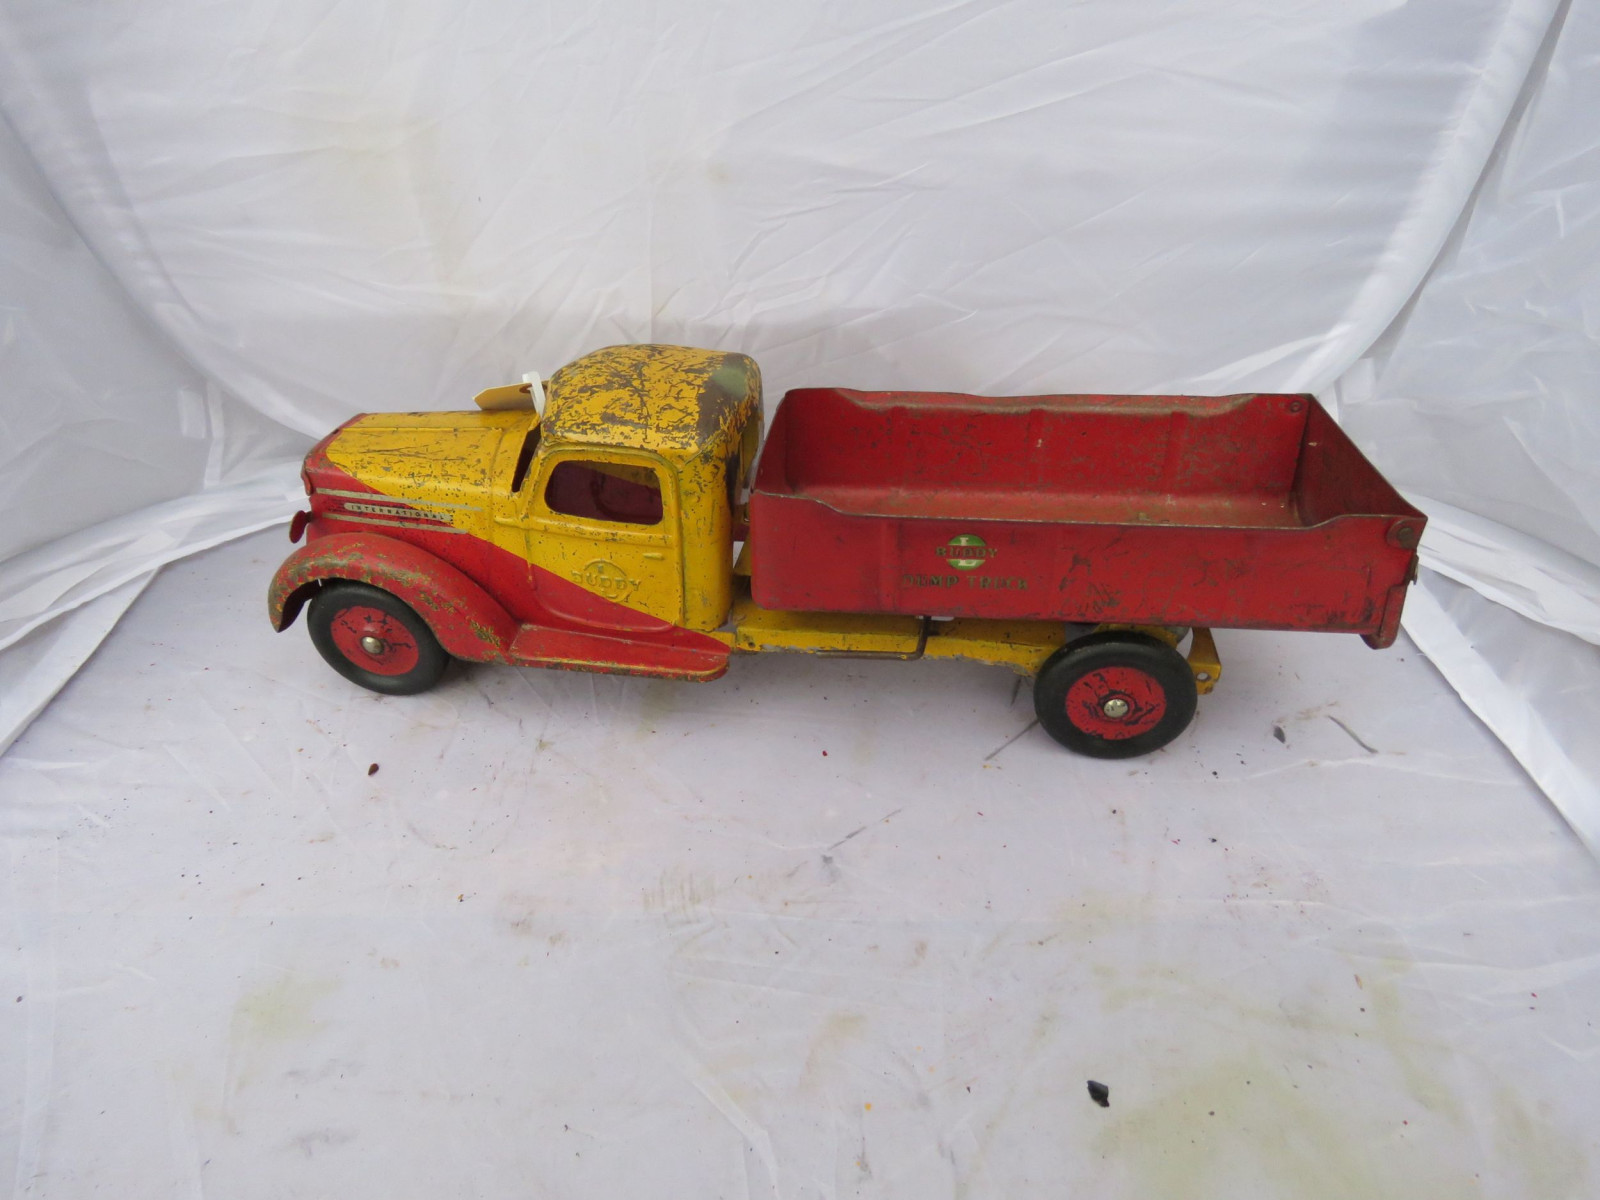 Buddy L International Truck Pressed Tin - Image 2